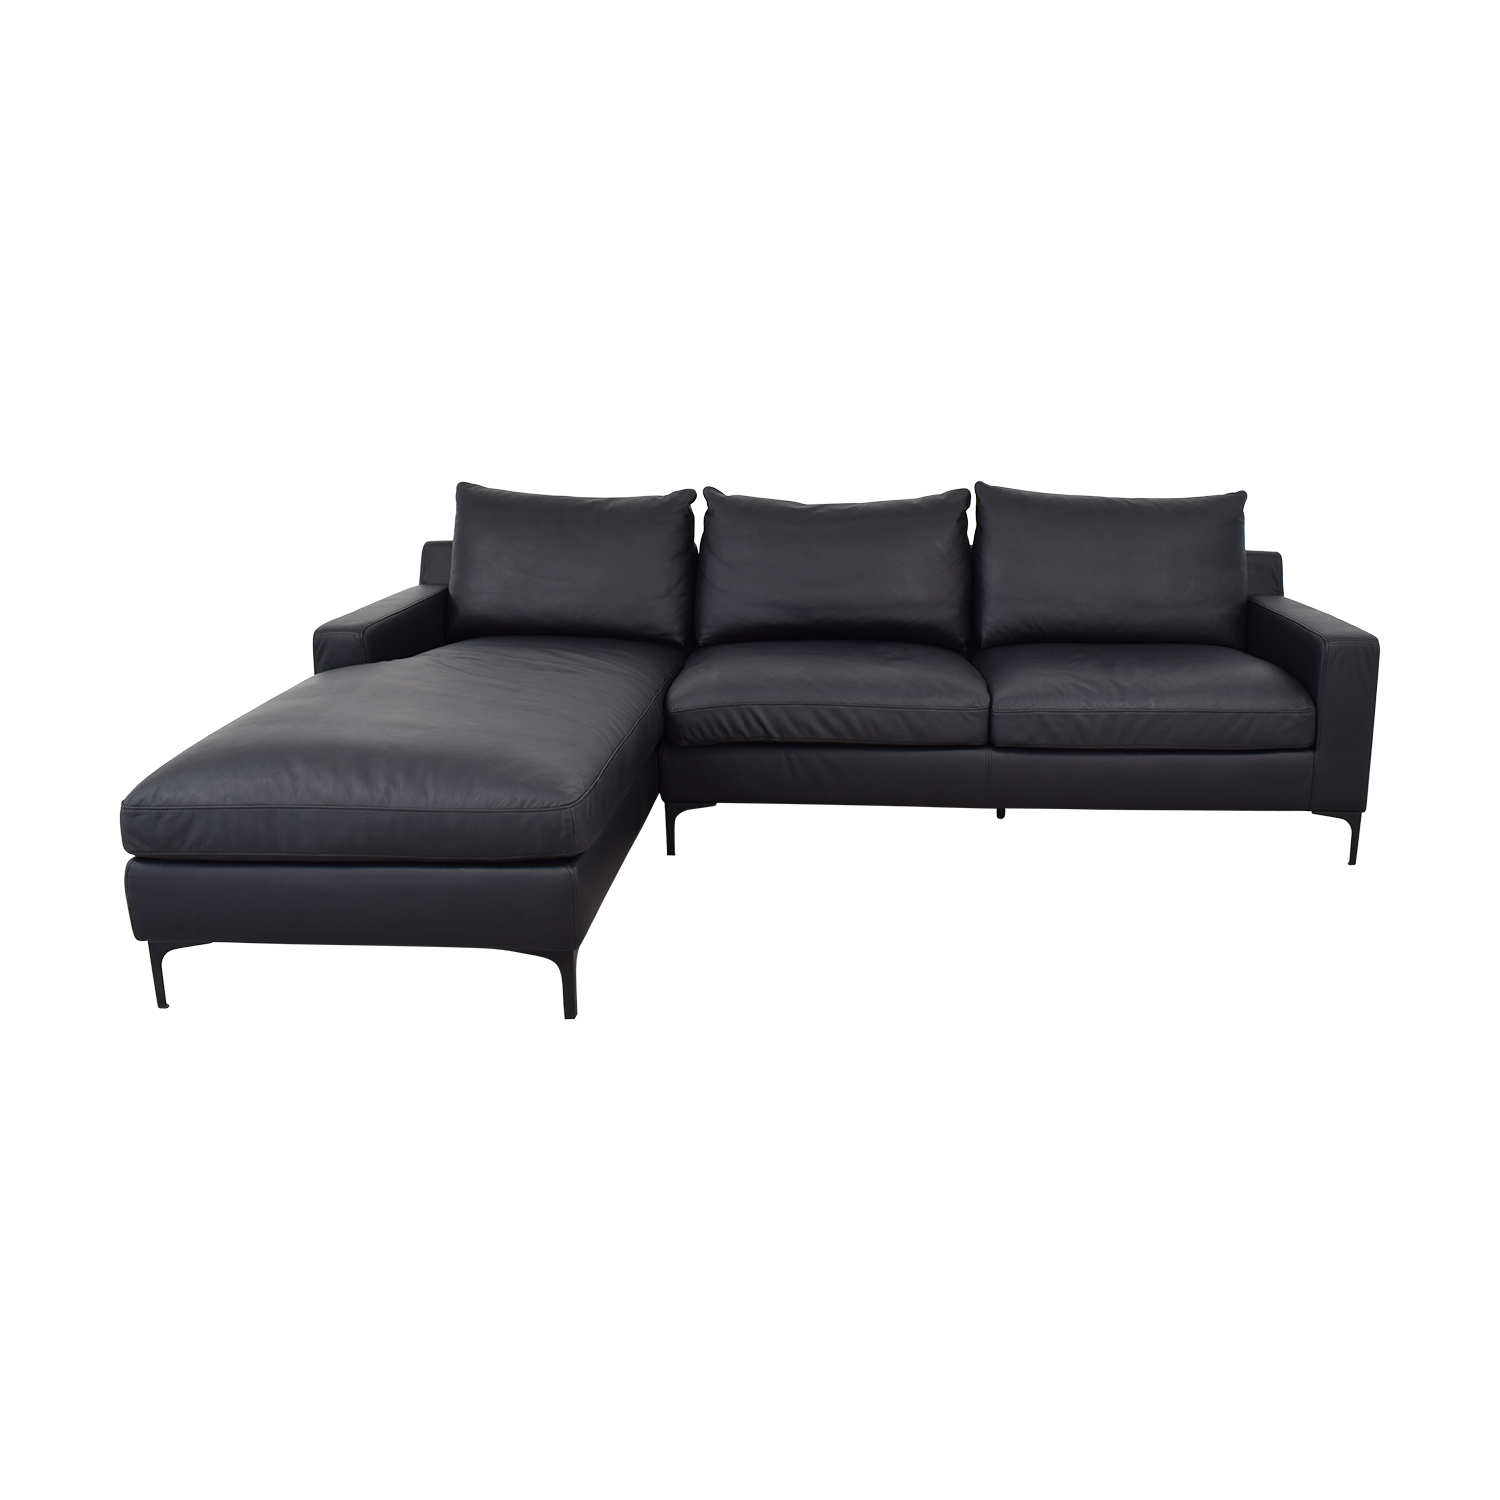 Sloan Leather Night Left Chaise Sectional / Sofas